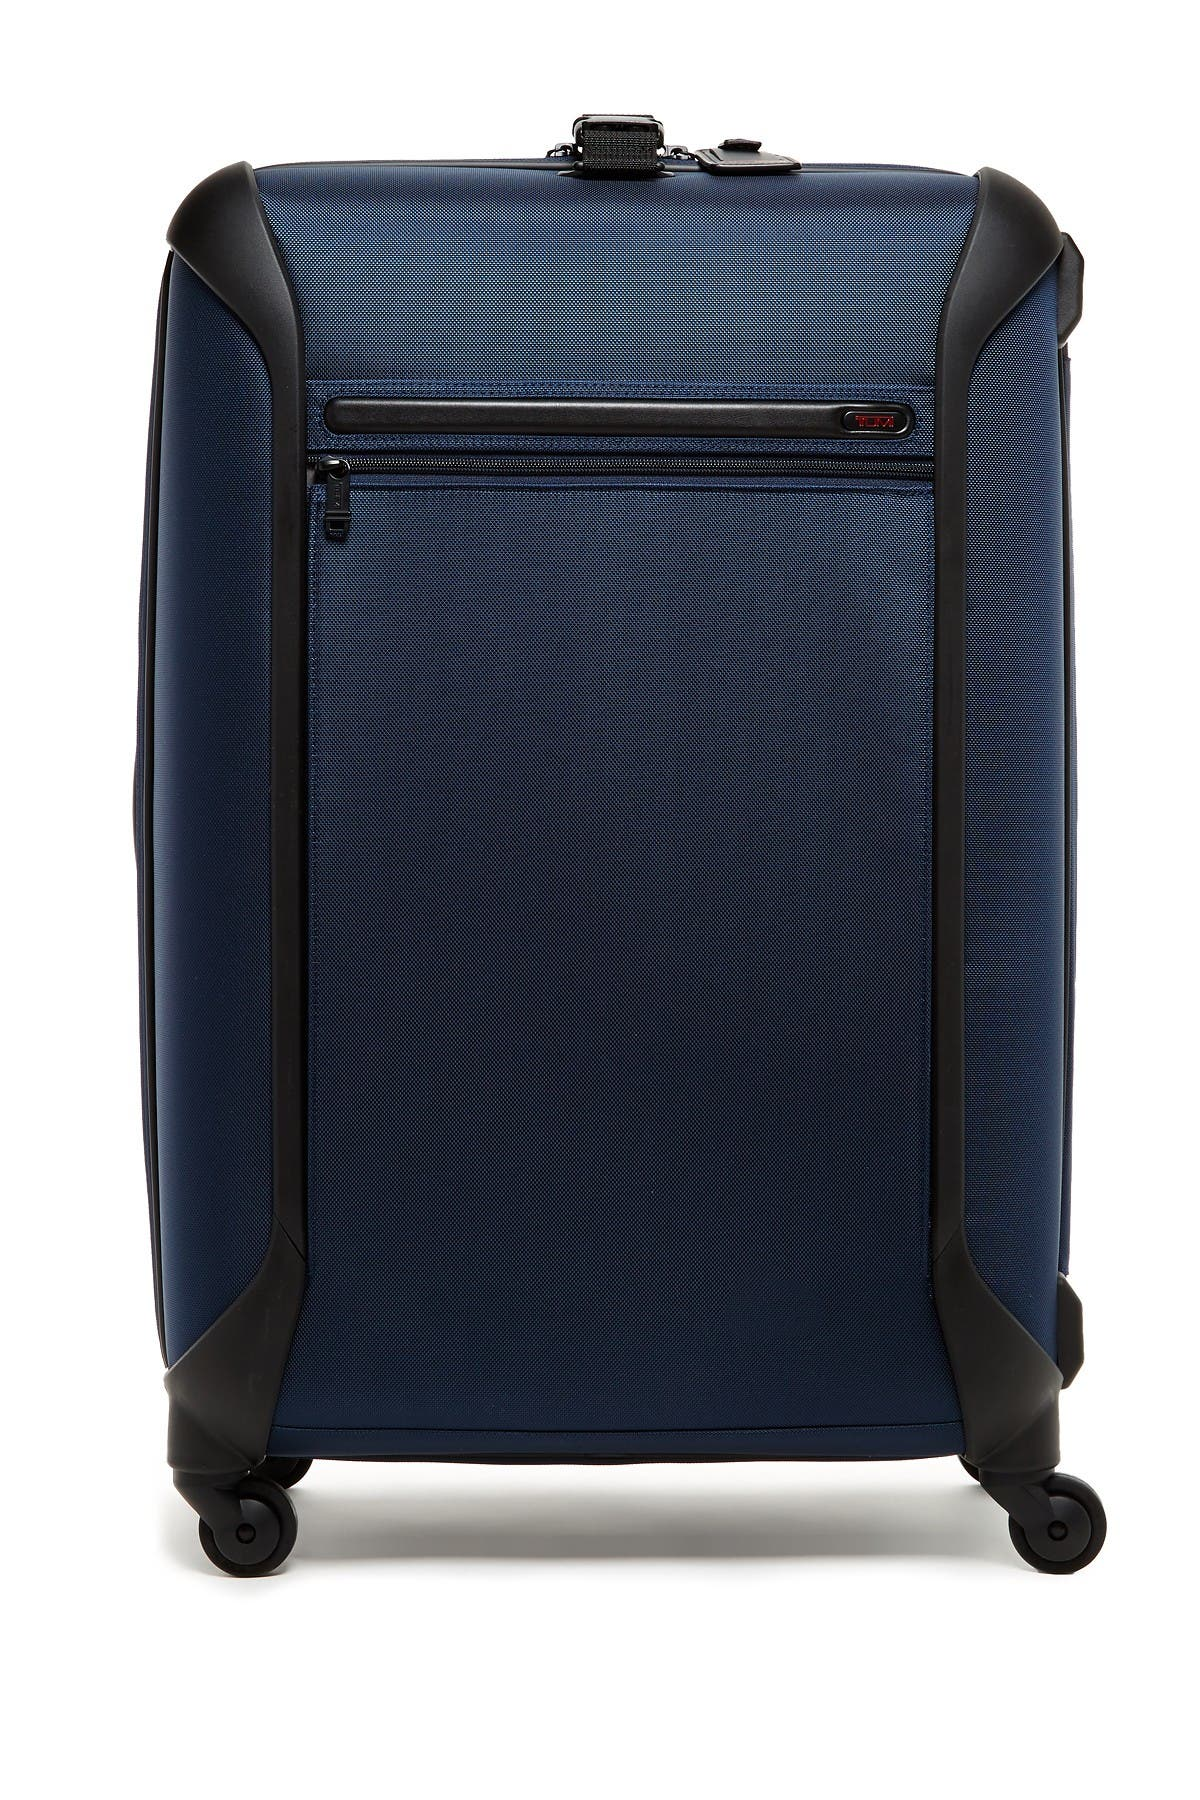 "Image of Tumi Lightweight 30"" Nylon Large Trip Packing Case"